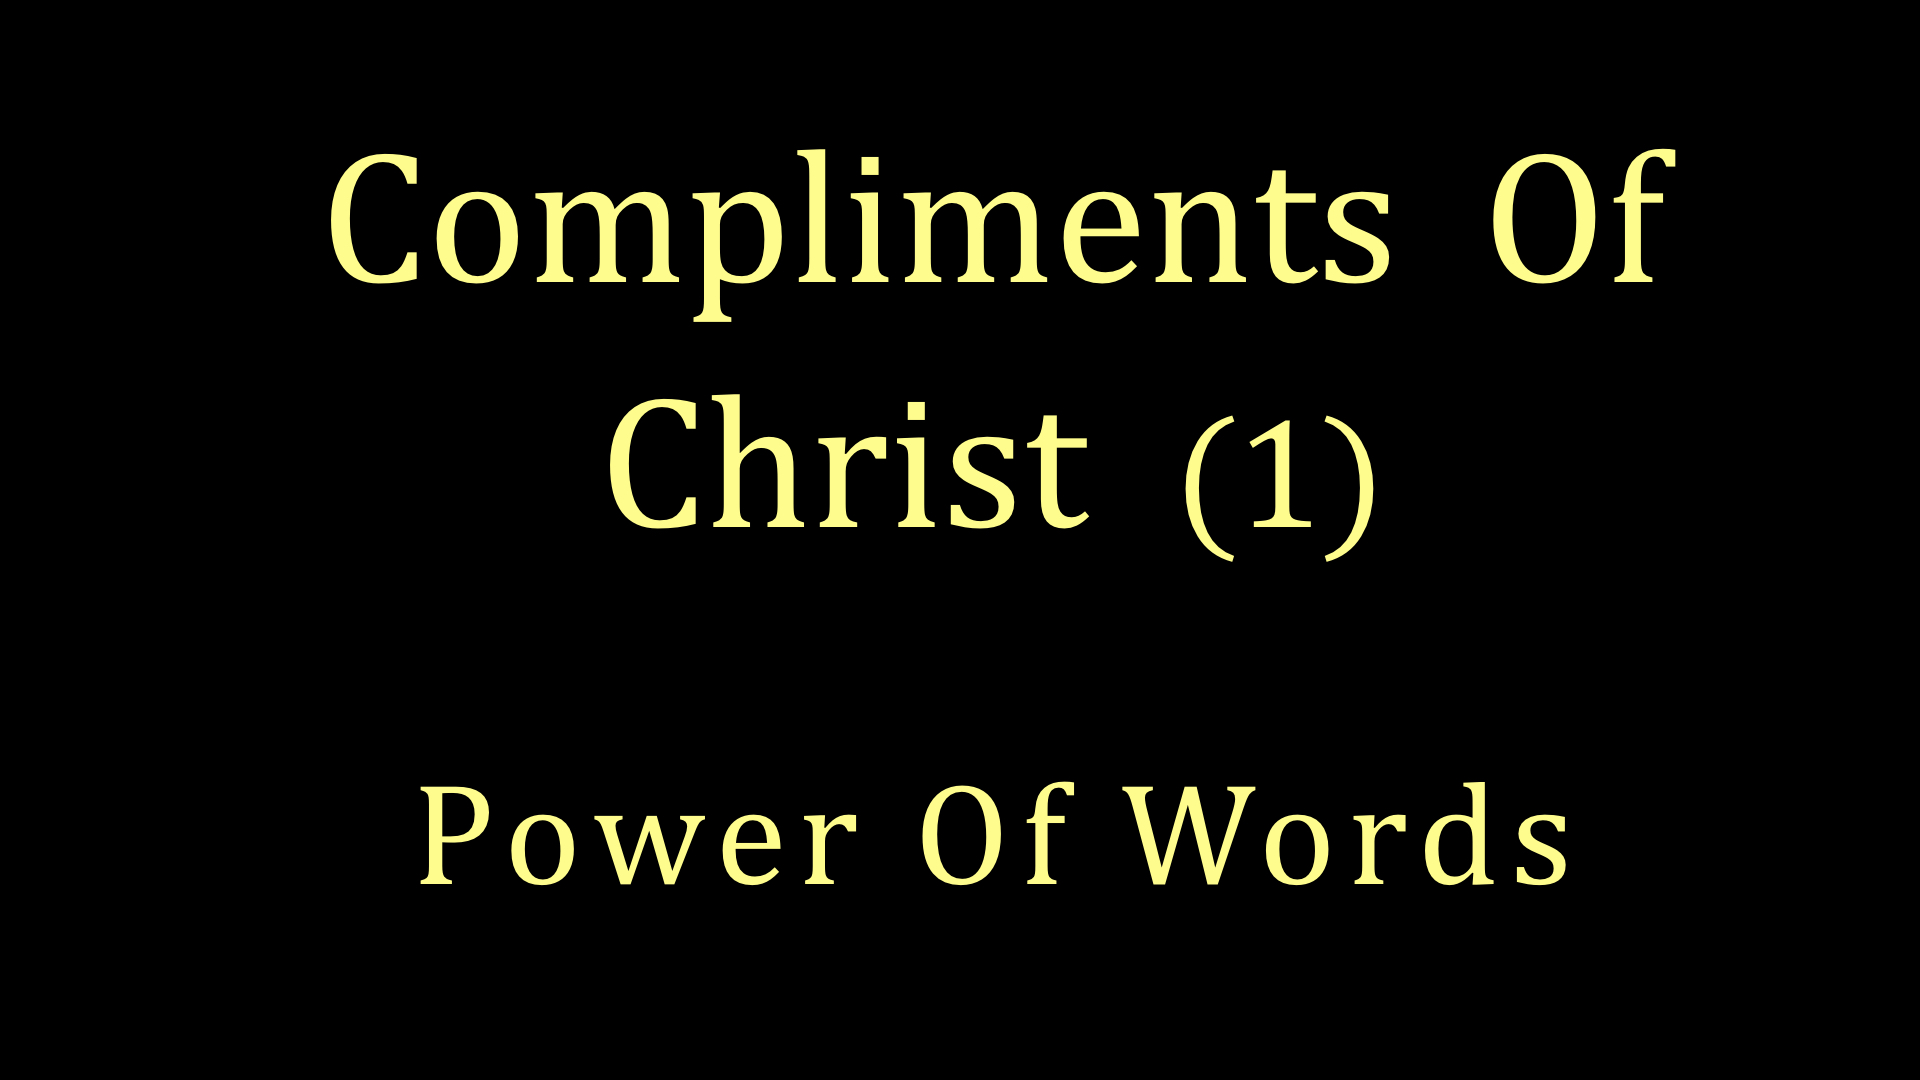 Compliments of Christ 1 - Power Of Words WIDE.jpeg